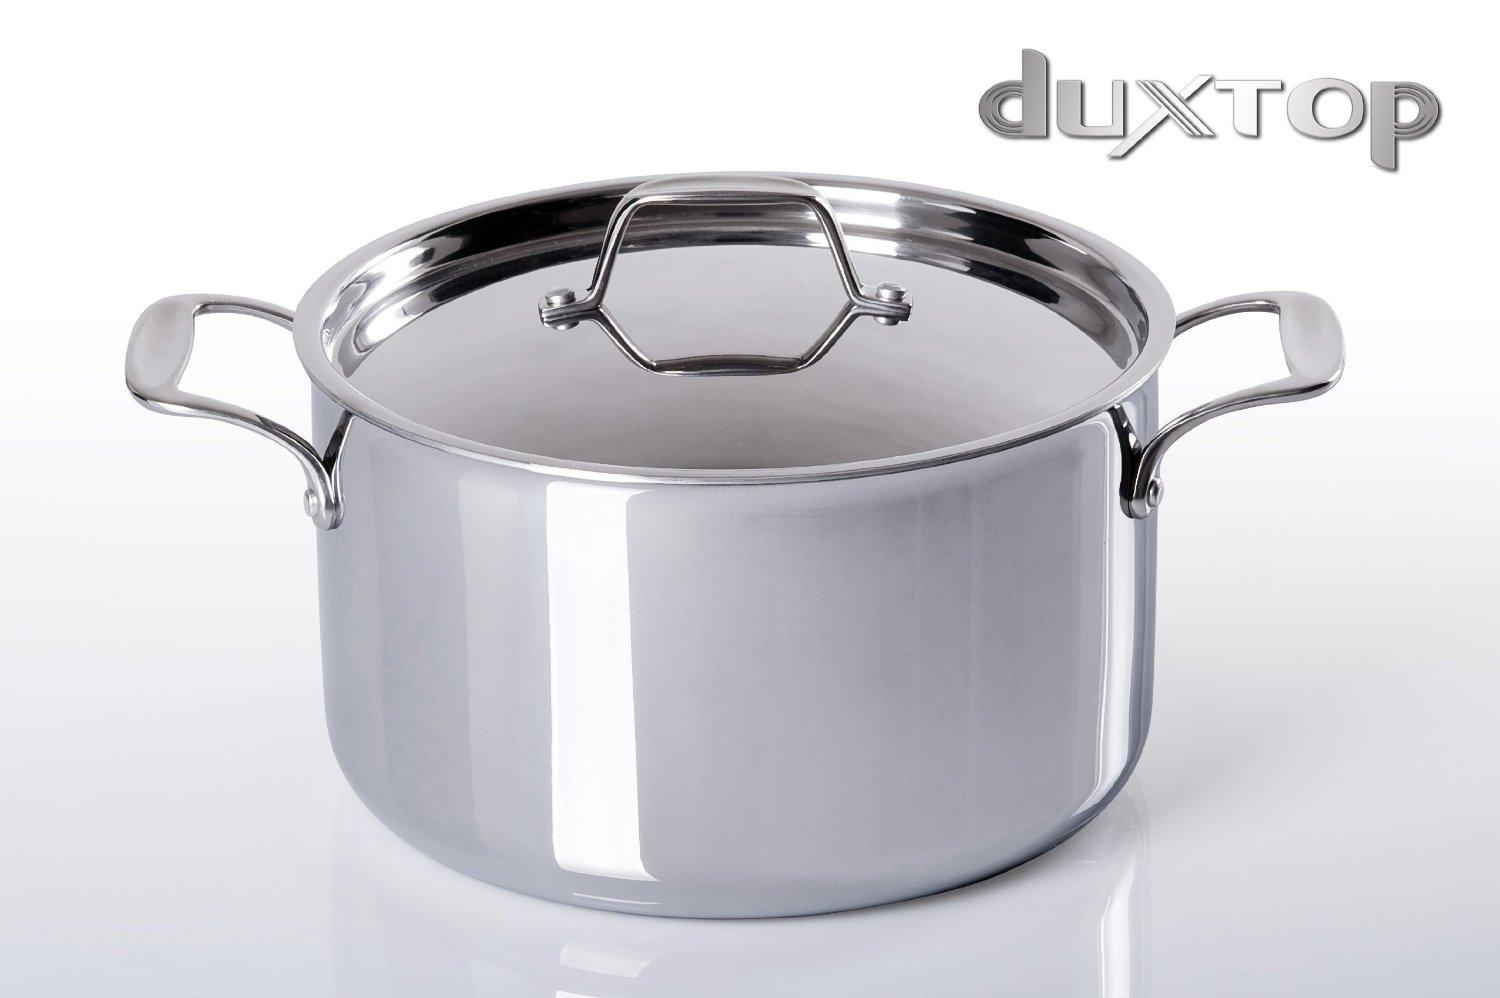 an watt burner according the i reviews while buyers verified this top ivation duxtop countertop from countertops customer review amazon they to induction writing rated single discovered portable of stove cooktop choice